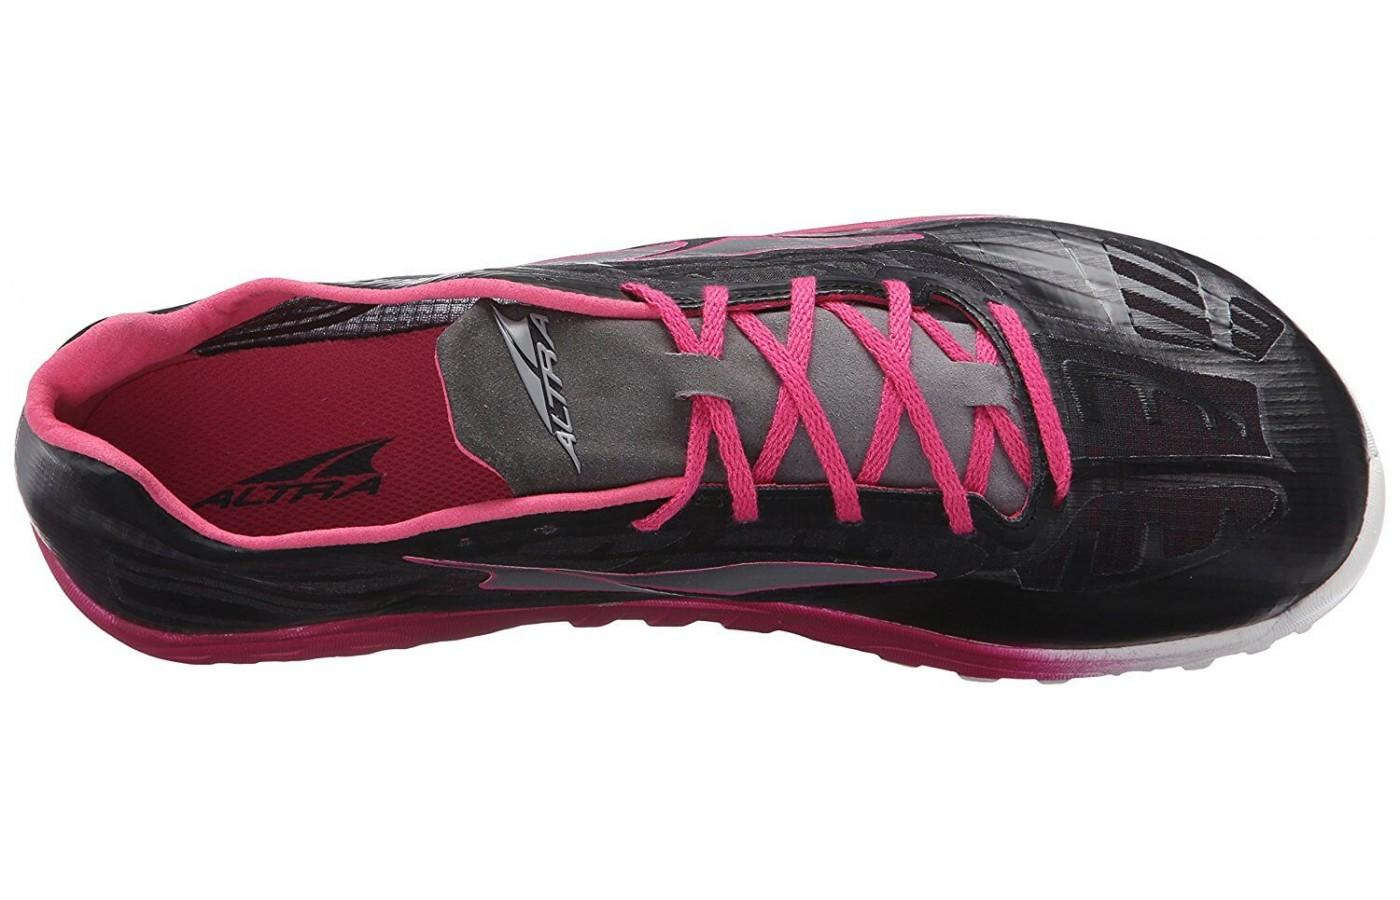 the upper of the Altra Golden Spike is made of a breathable quick-dry mesh